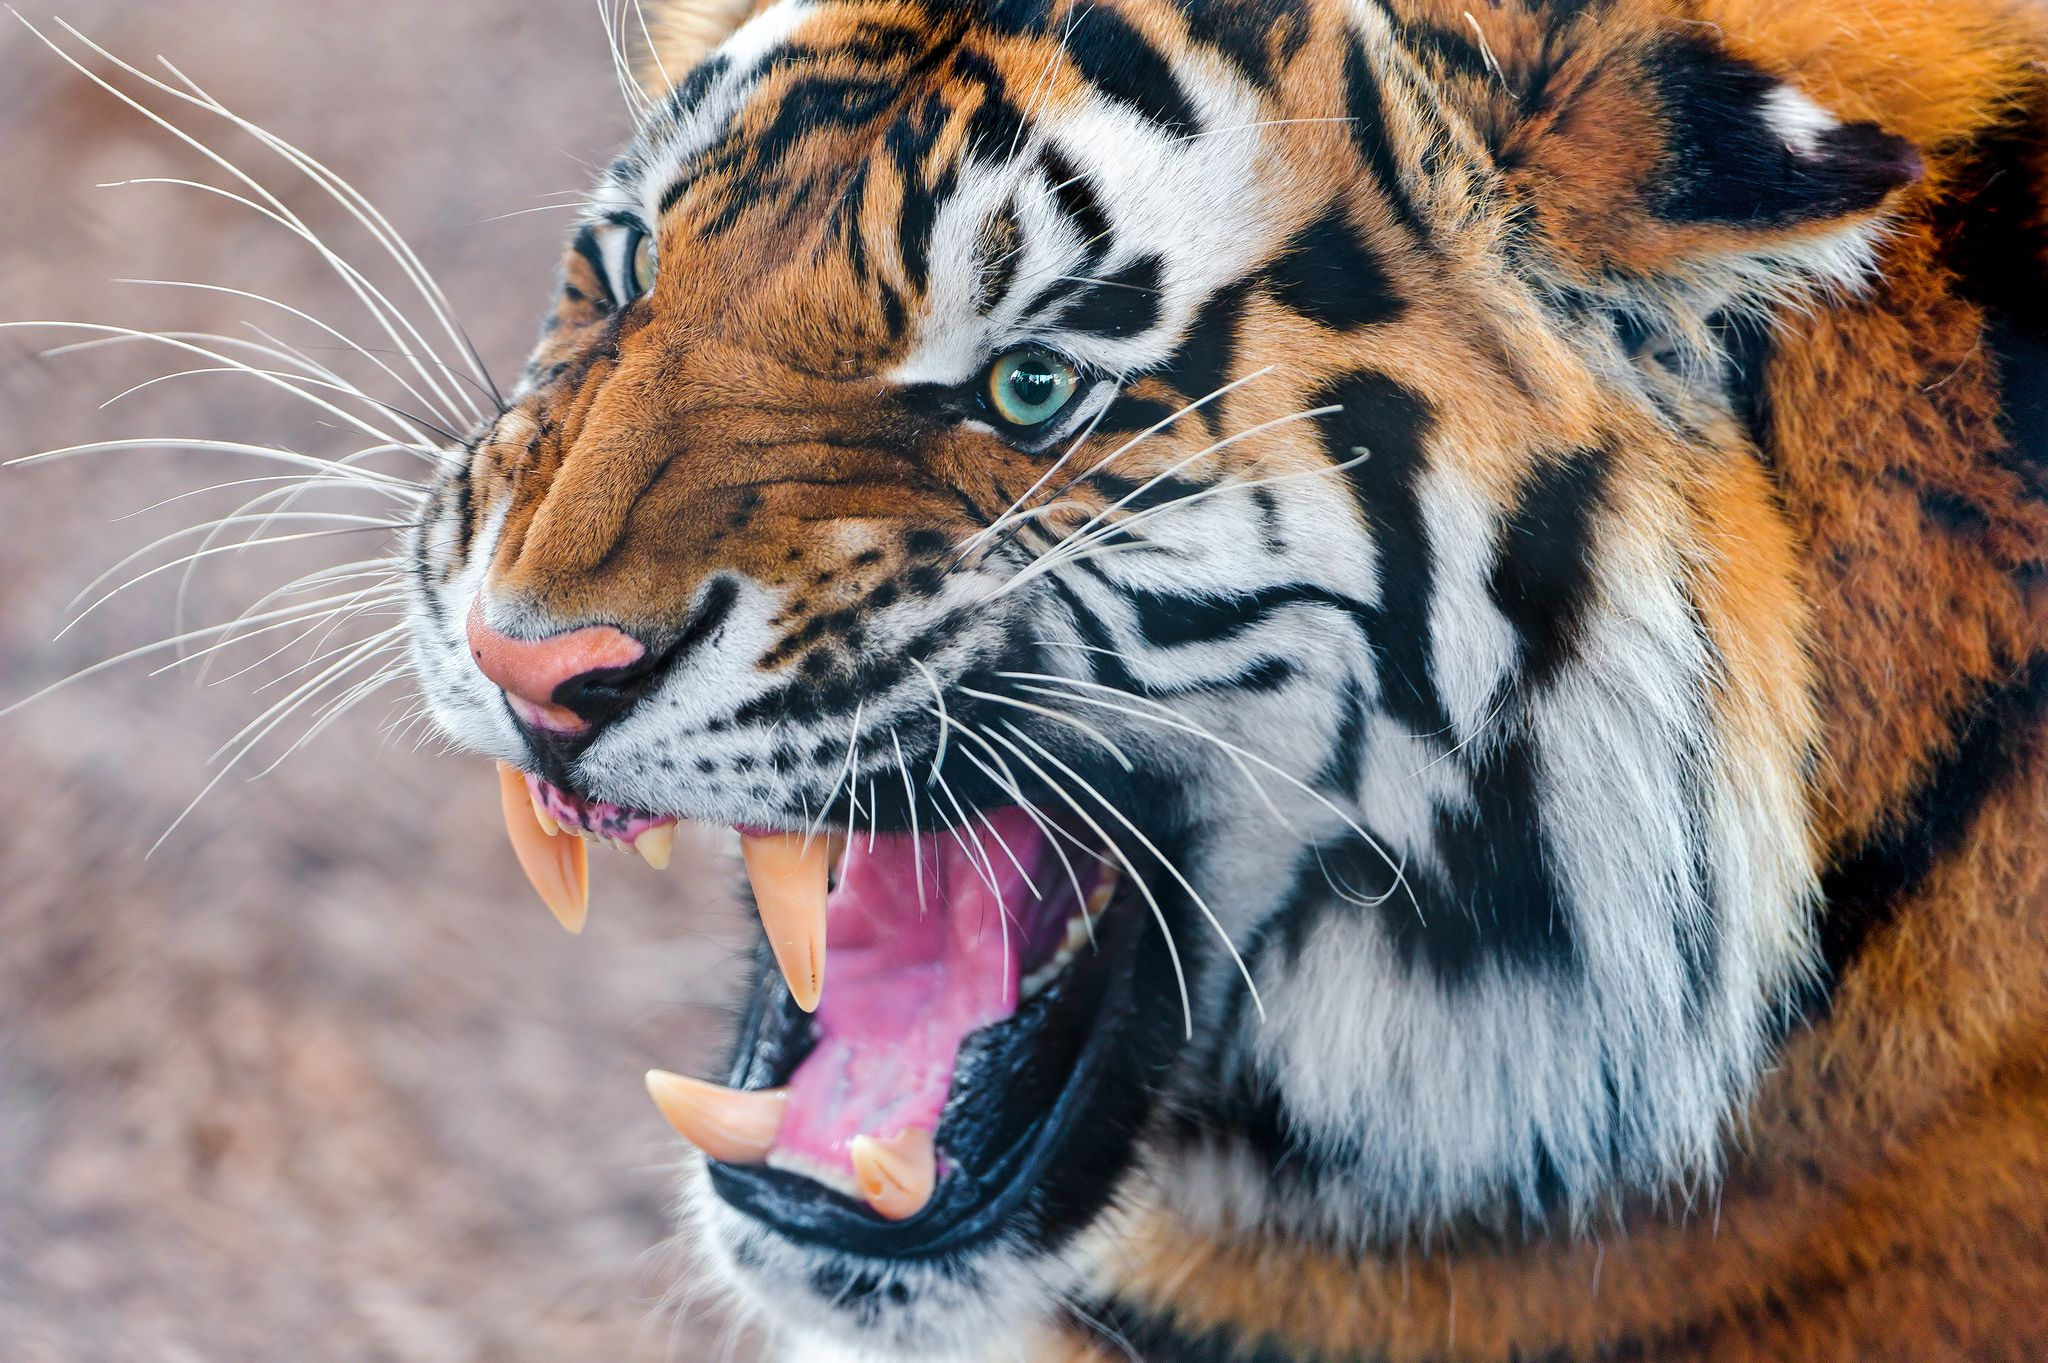 Angry Tiger Again In 2021 Tiger Wallpaper Tiger Images Tiger Pictures